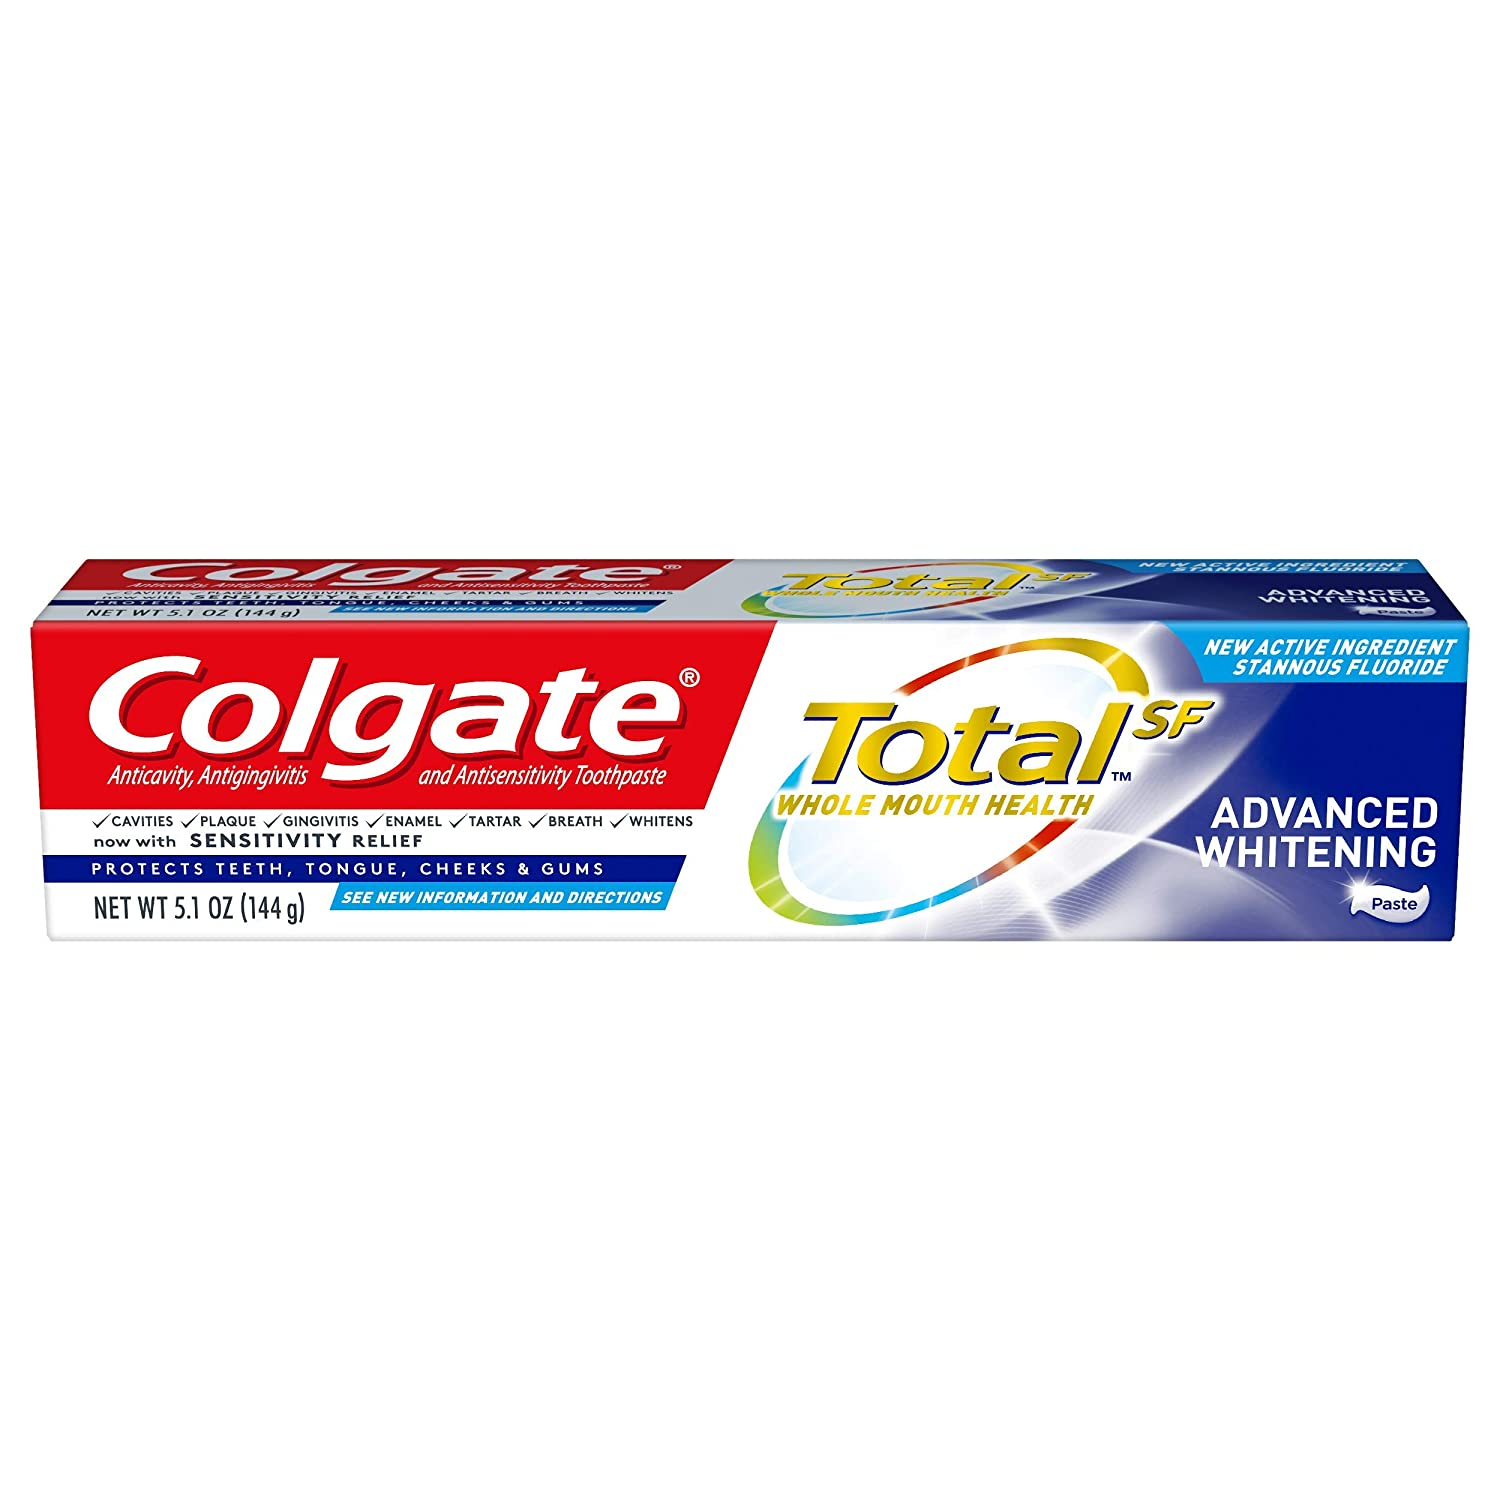 Colgate Total Whitening Toothpaste, Advanced Whitening, 5.1 Ounce